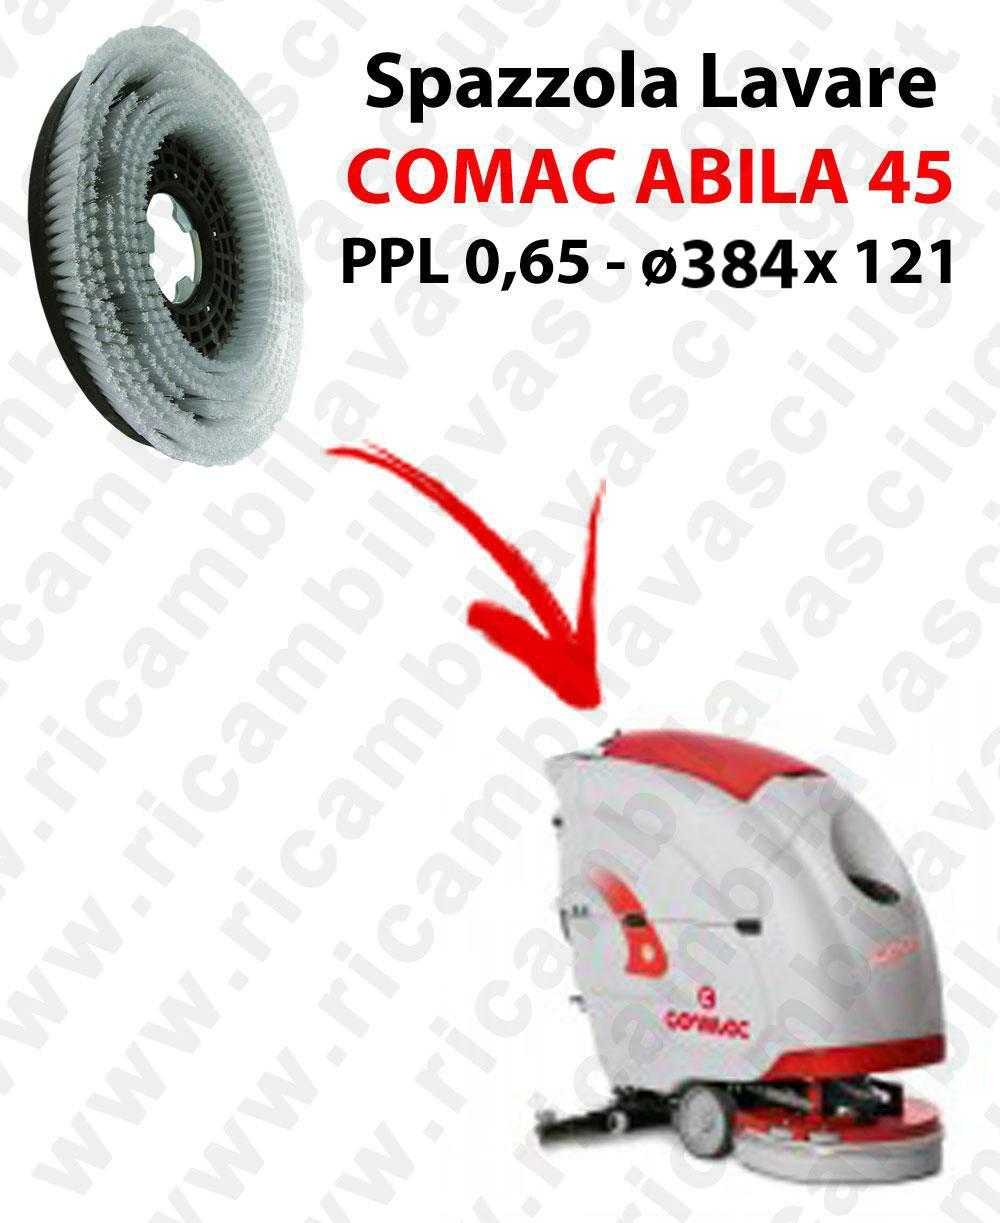 Cleaning Brush for scrubber dryer COMAC ABILA 45. Model: PPL 0,65  ⌀384 X 121